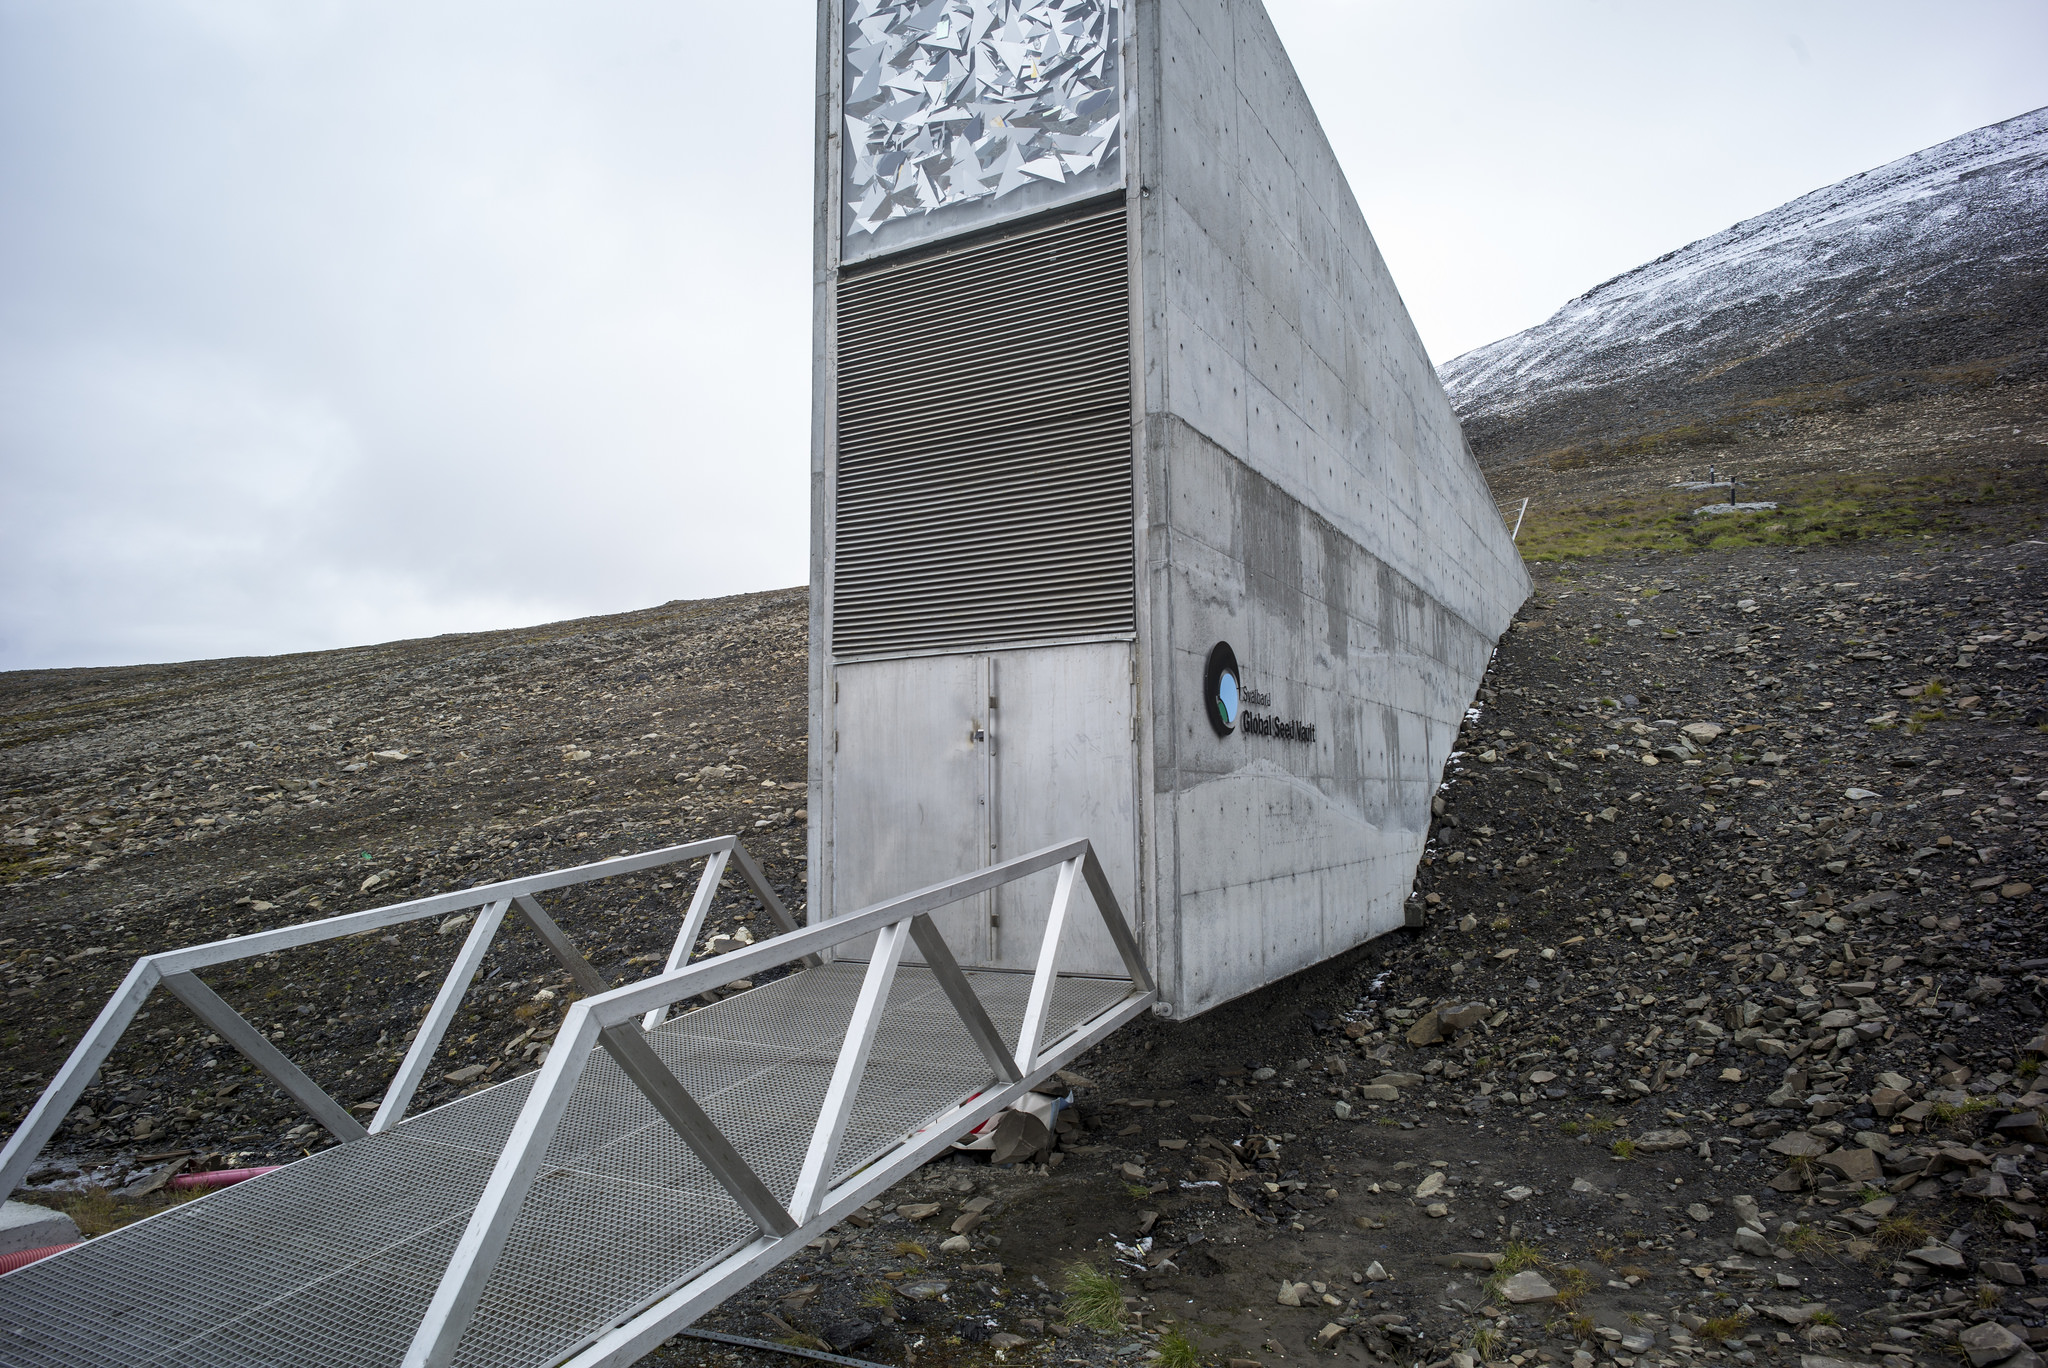 The Doomsday Seed Vault